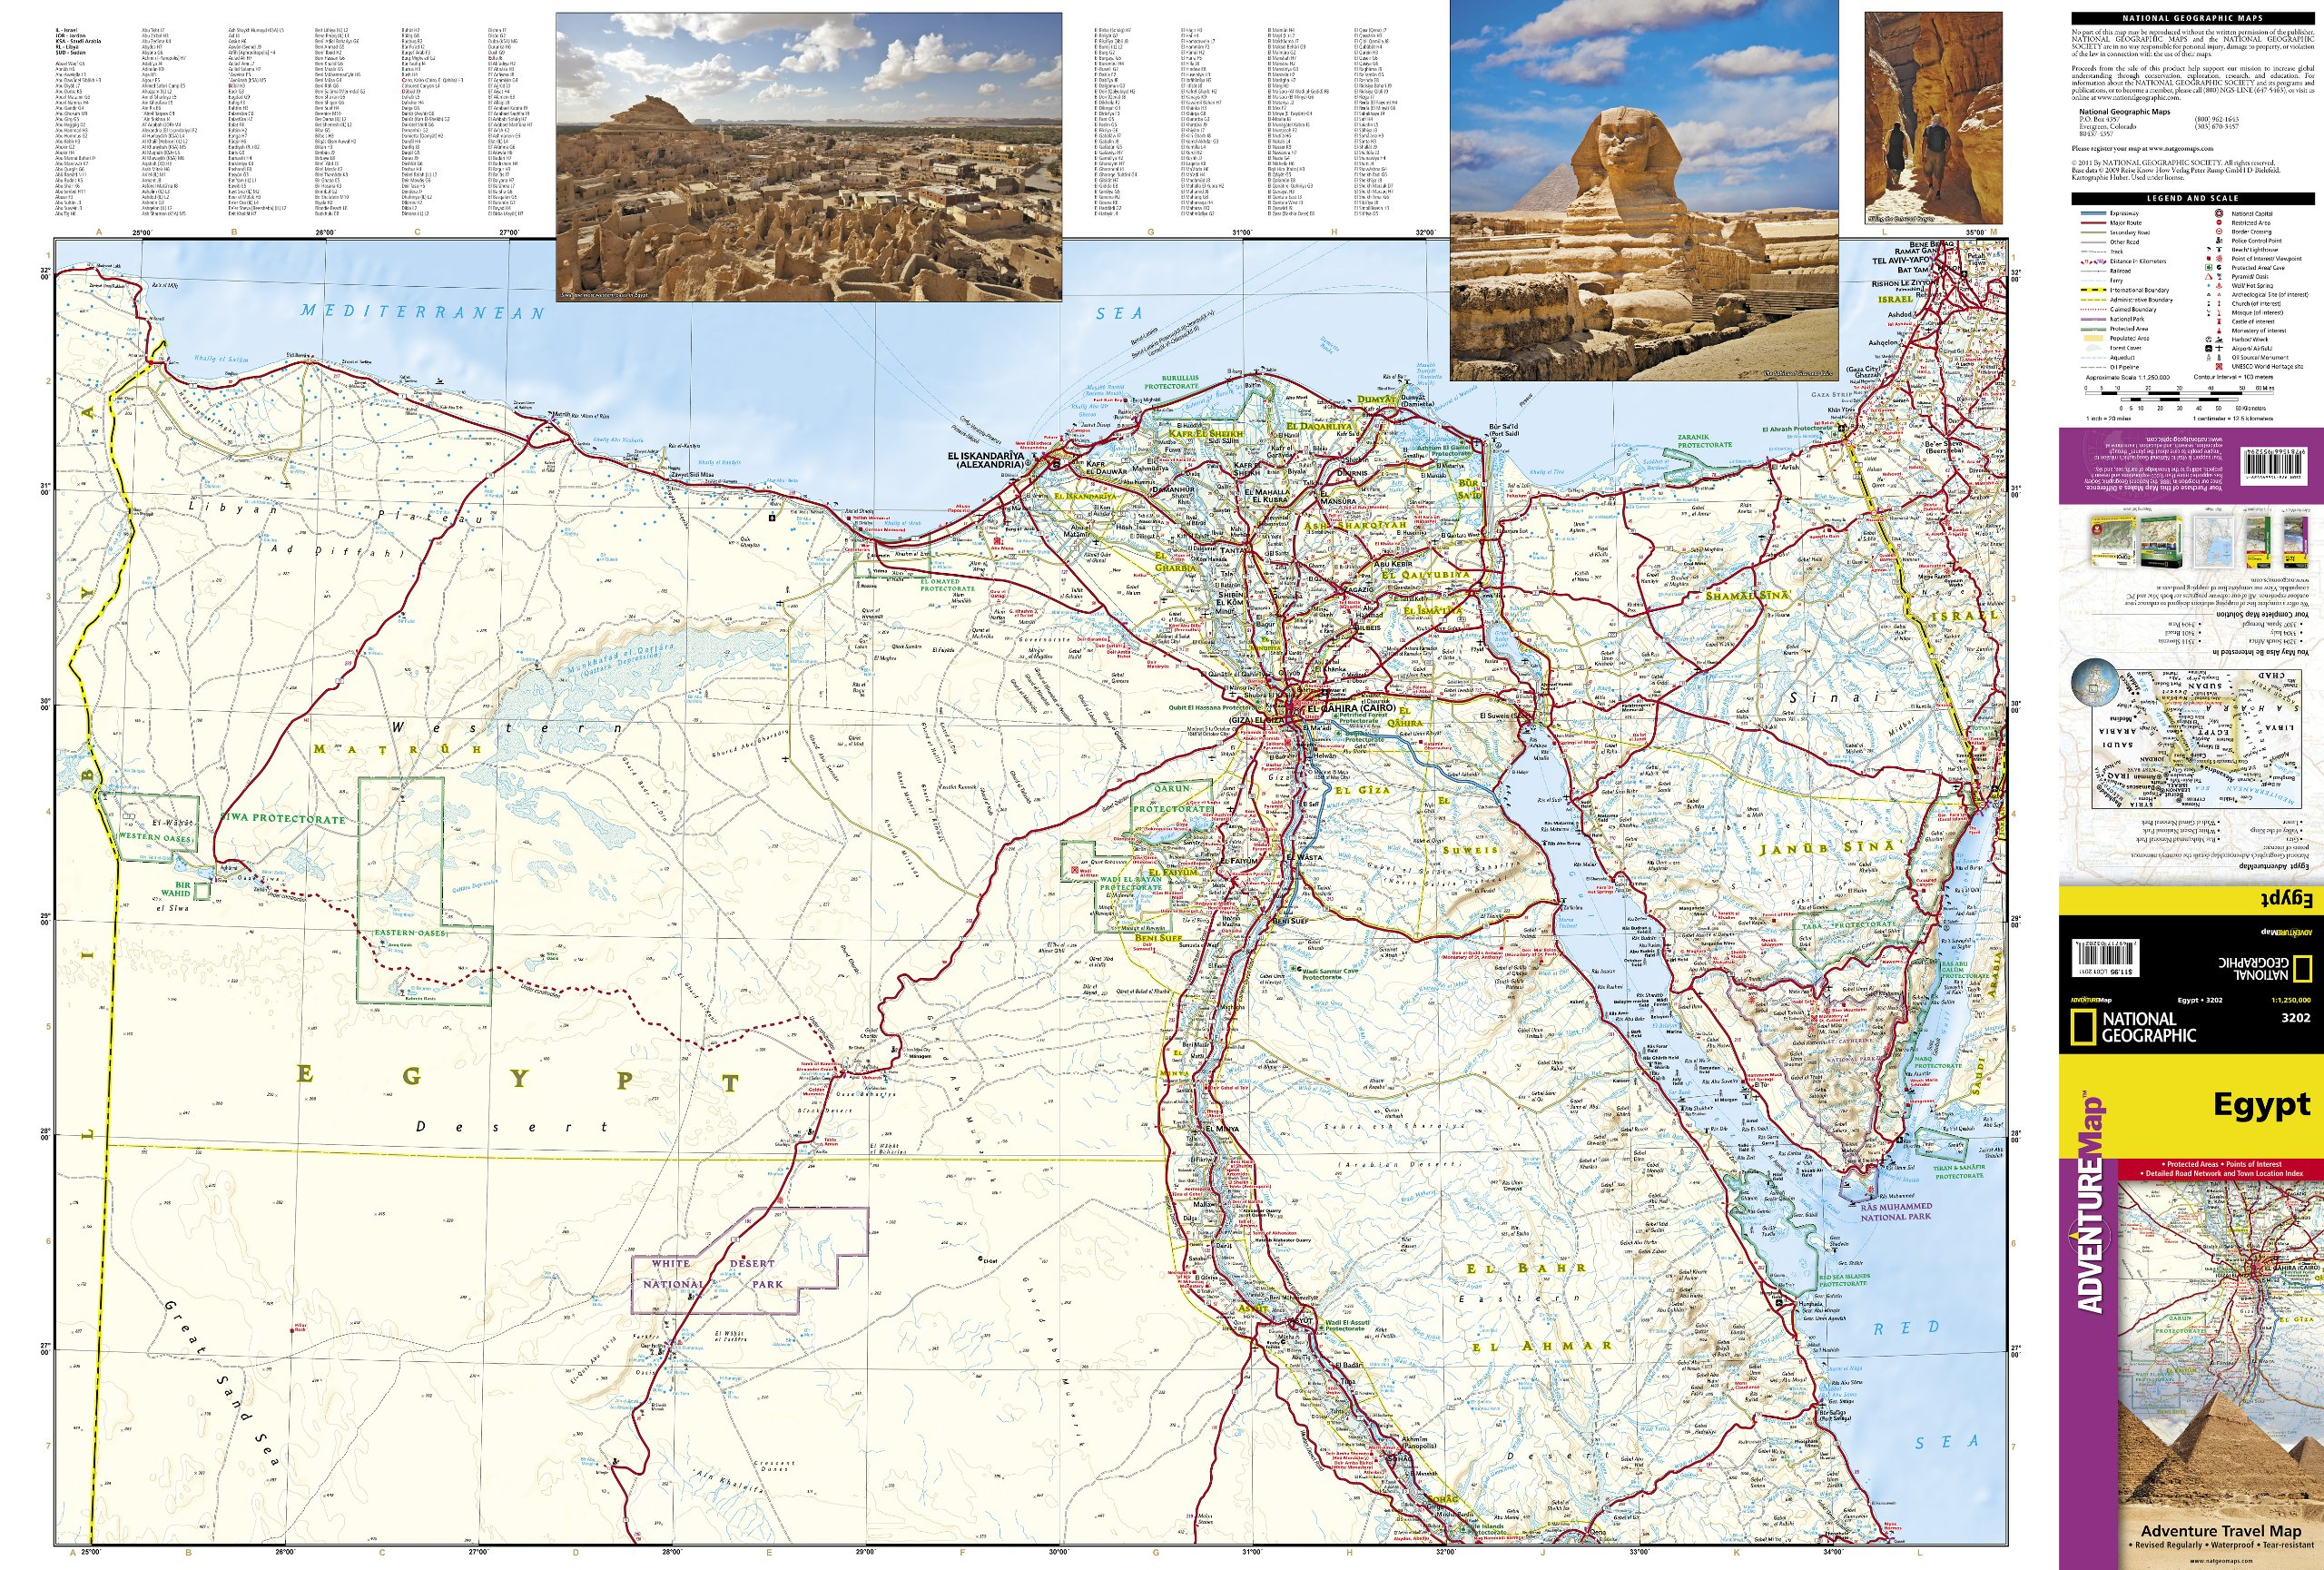 Egypt National Geographic Adventure Map National Geographic - Map of egypt national geographic